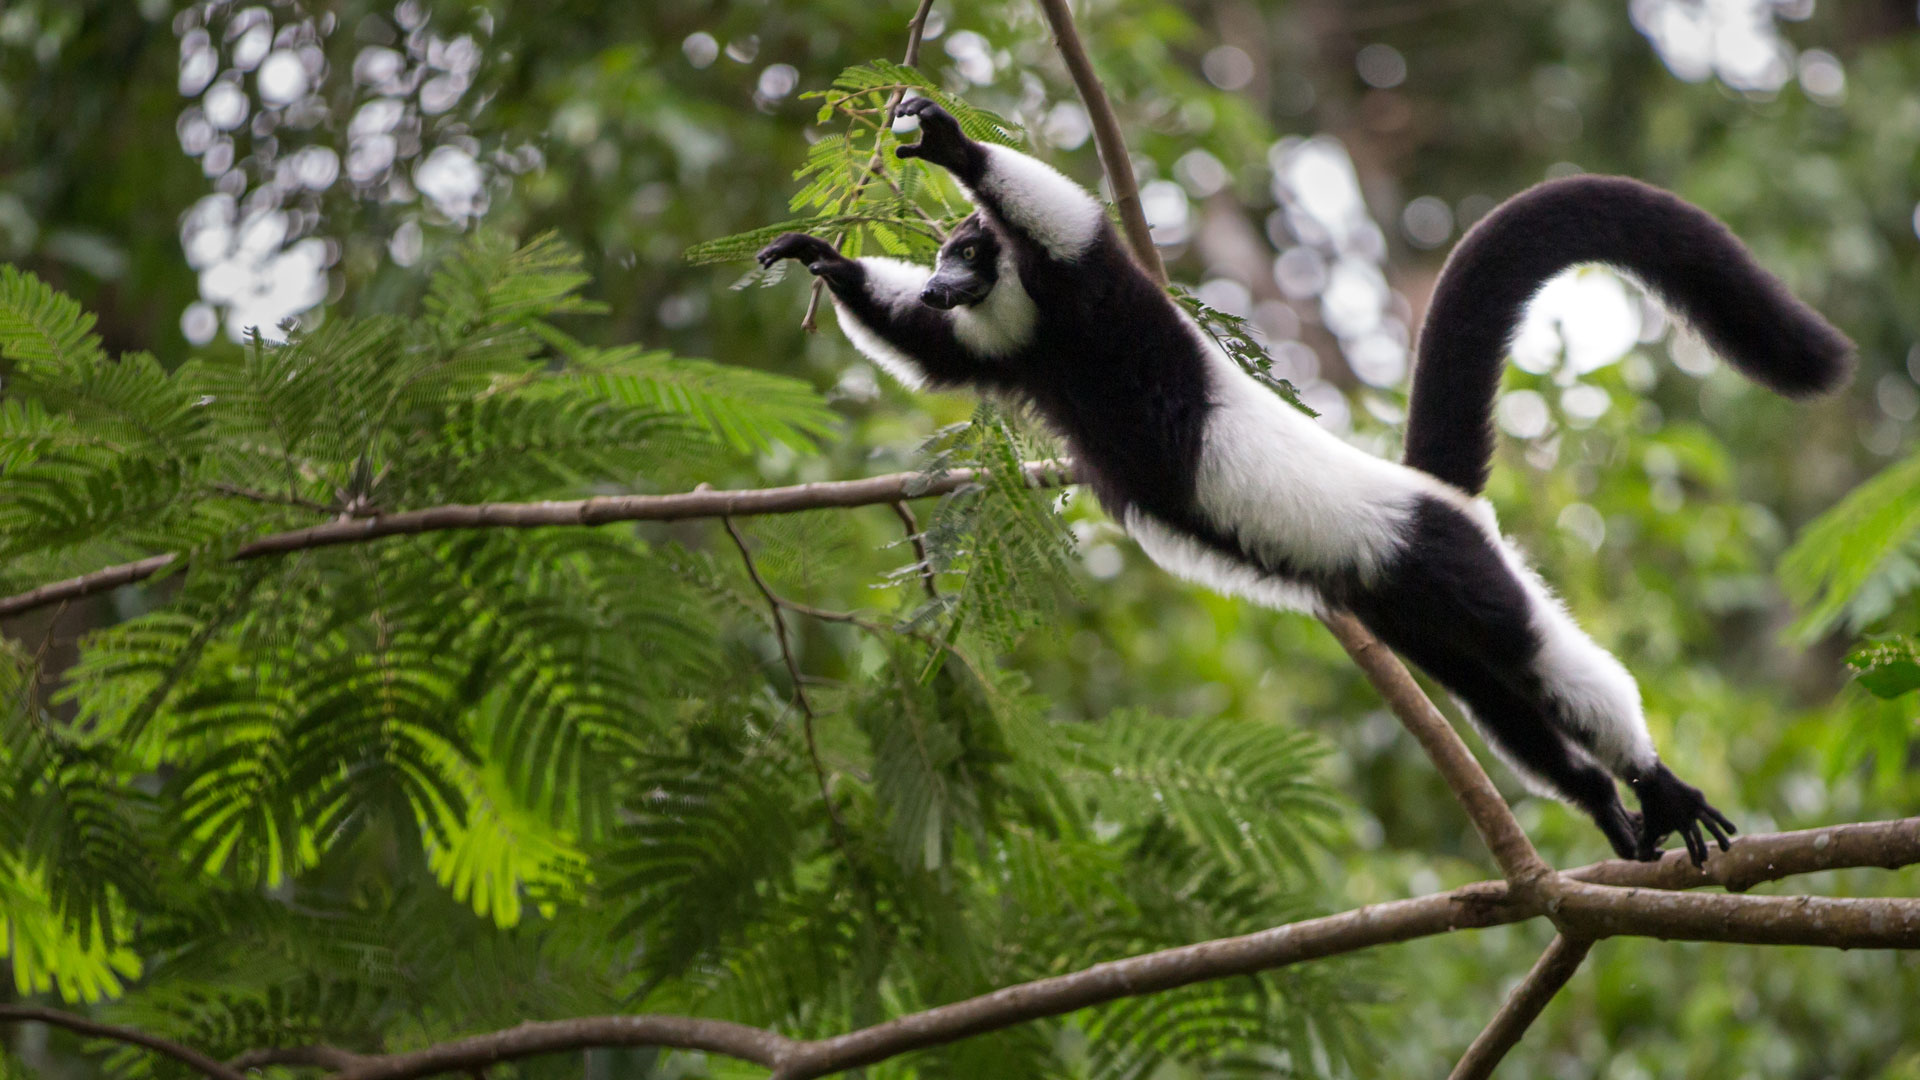 Black and Whicte Ruffed Lemur, Madagascar